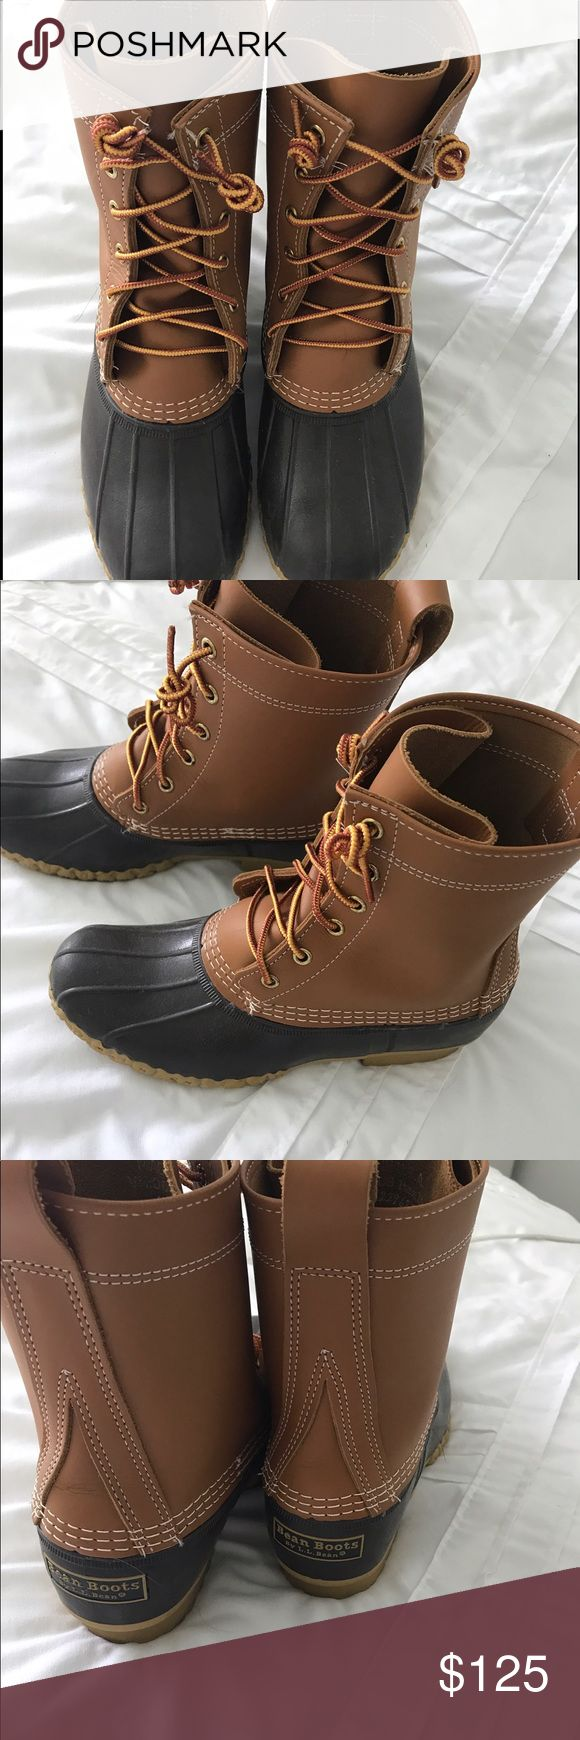 Ll bean boots / 8 inch Only wore once.They are too big for me . L.L. Bean Shoes Winter & Rain Boots